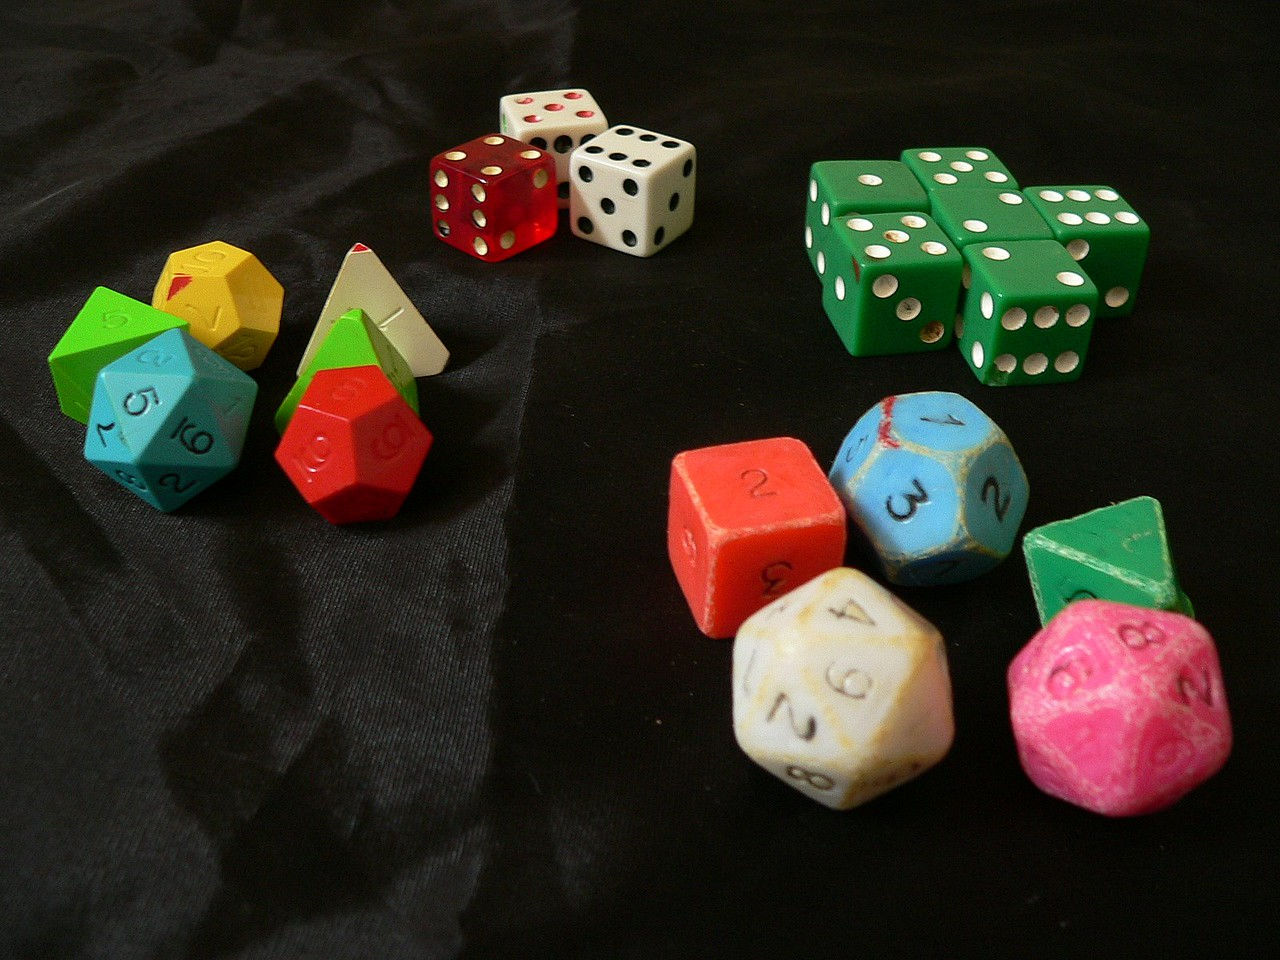 The dice...new and old.